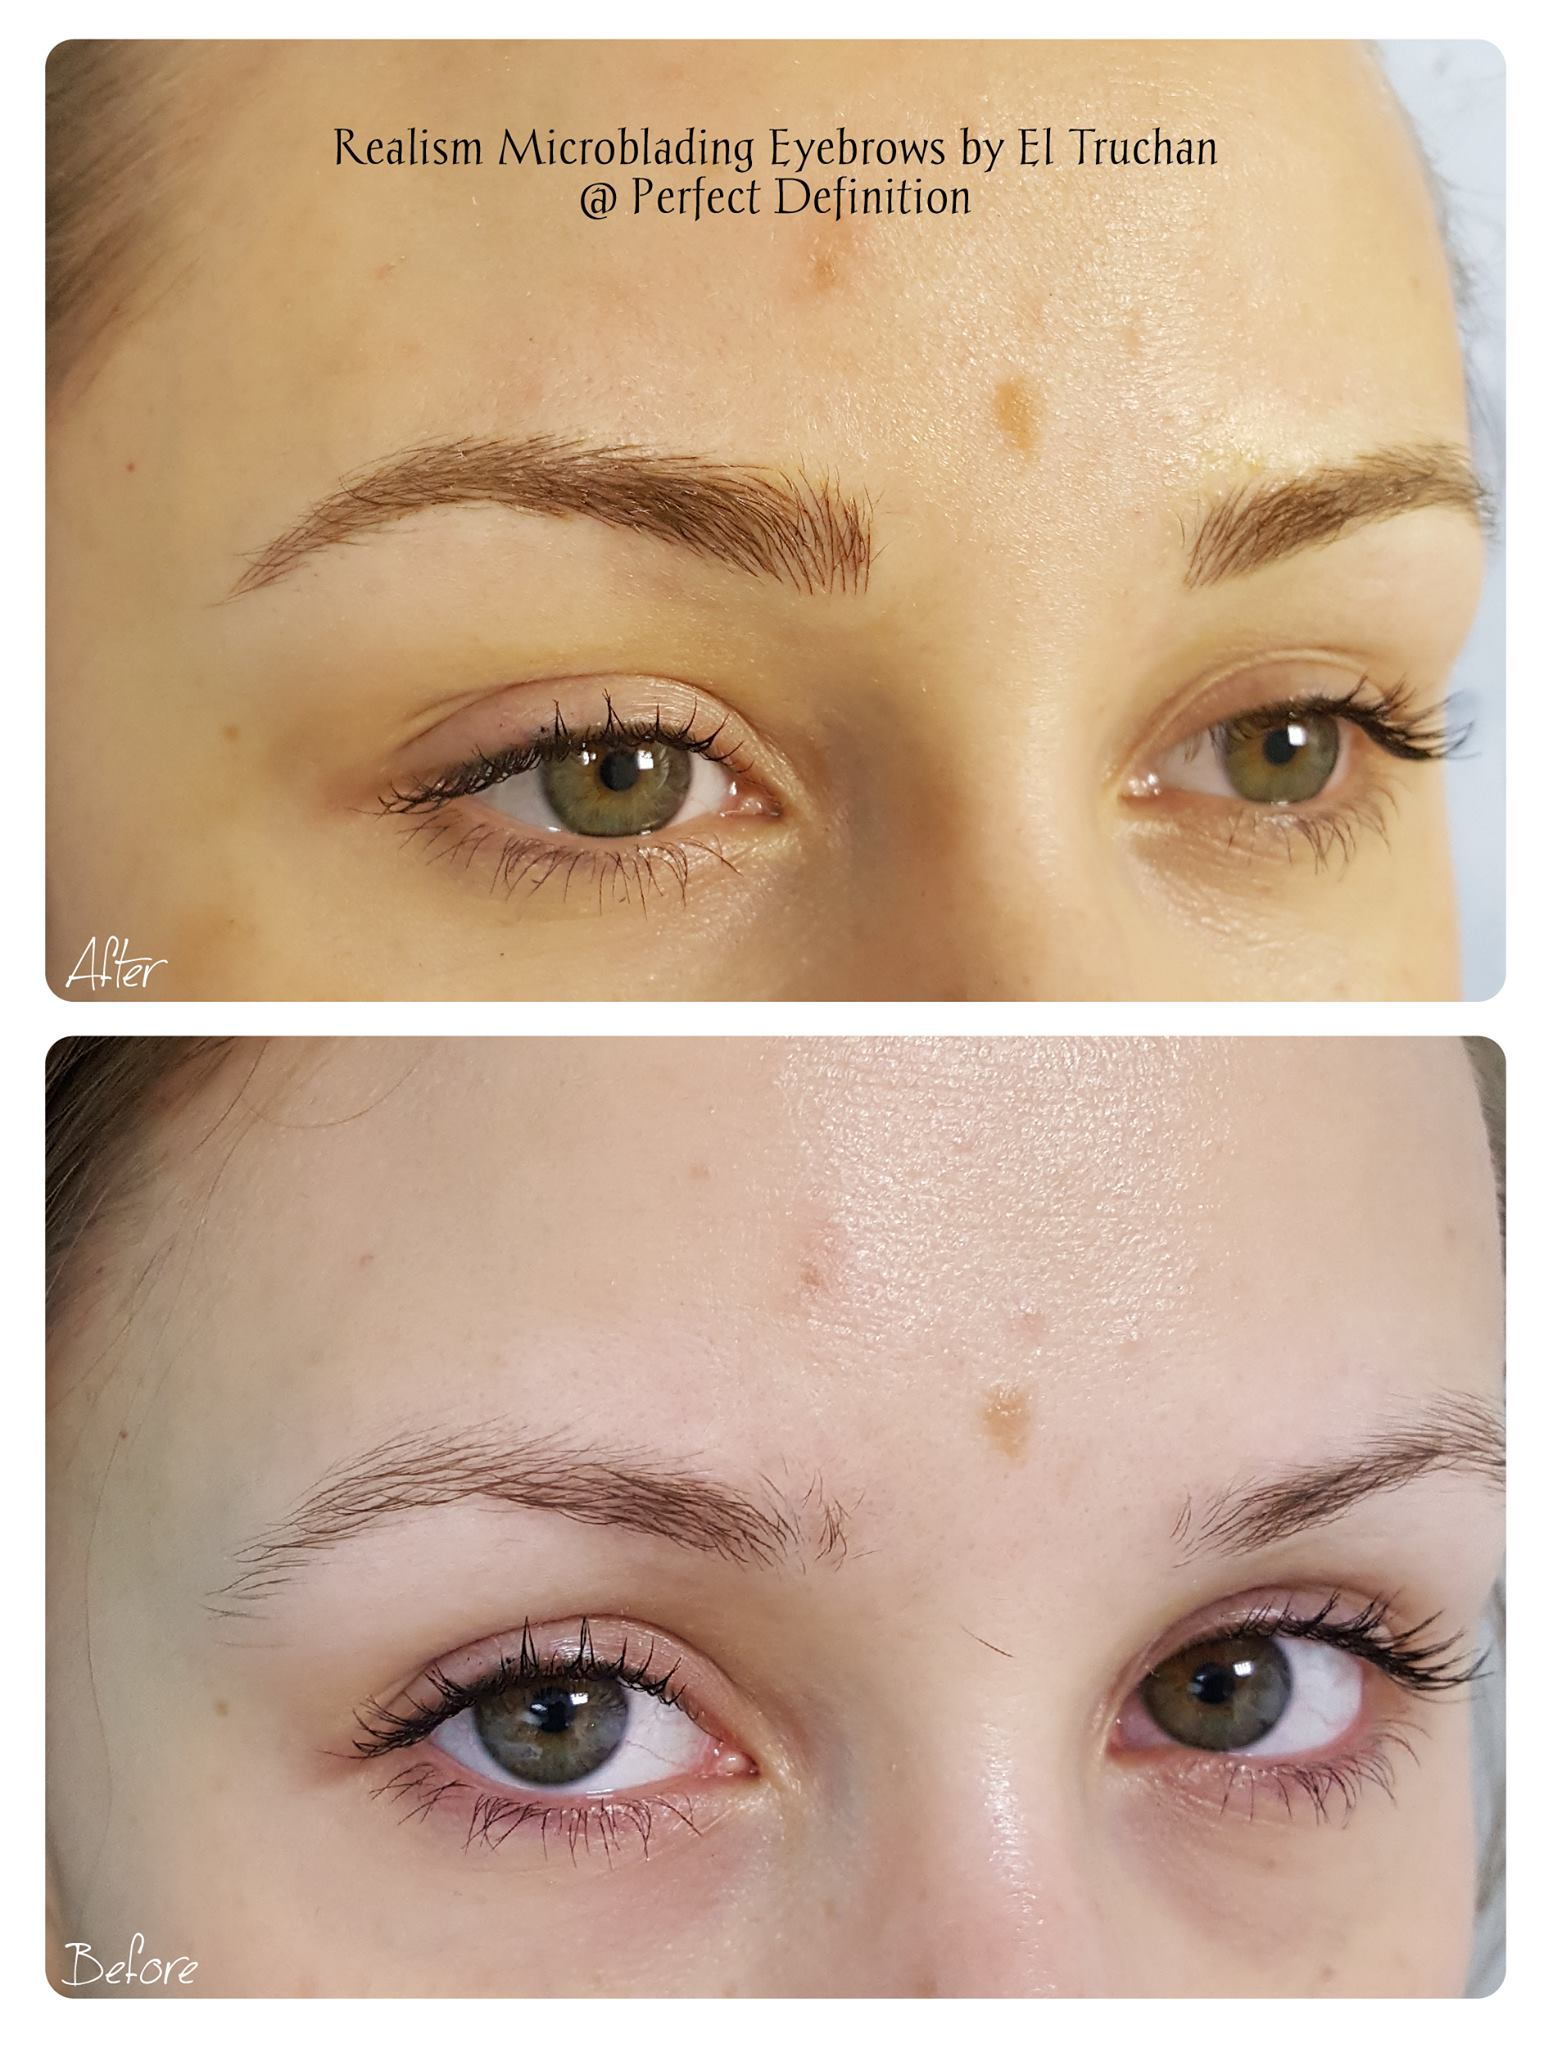 Realism Microbading Eyebrows